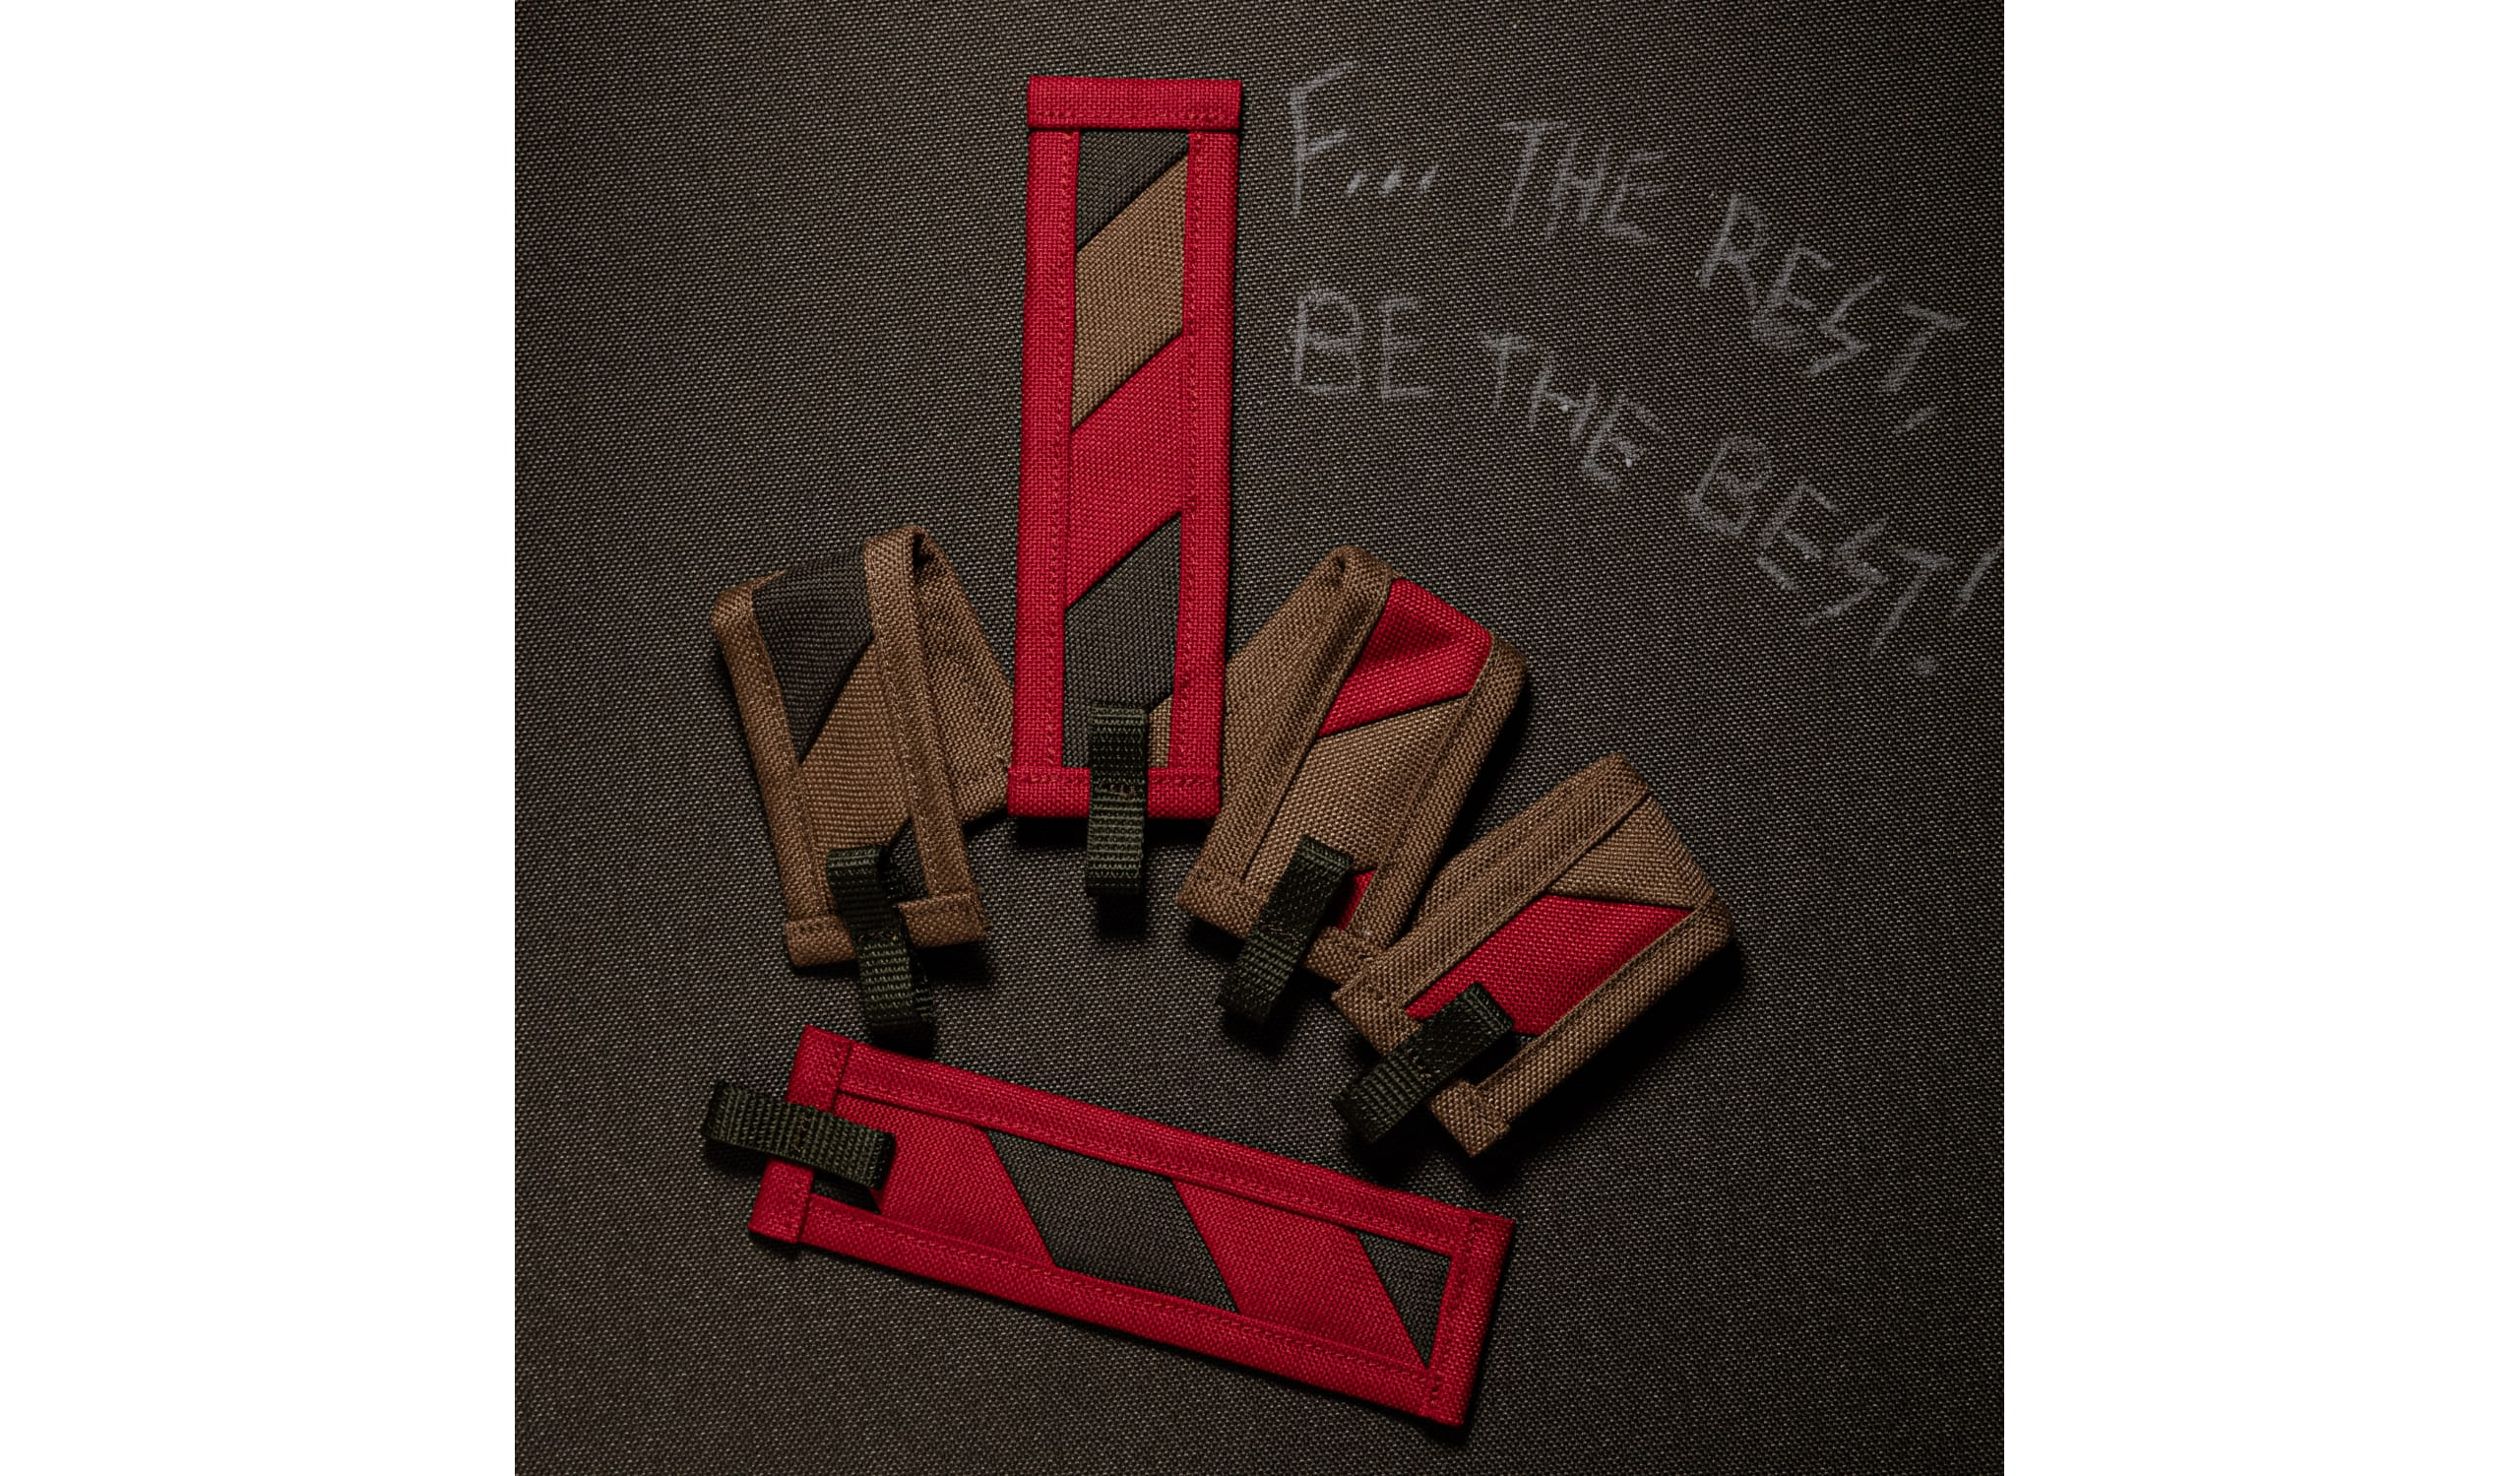 Fuck the rest, be the best!